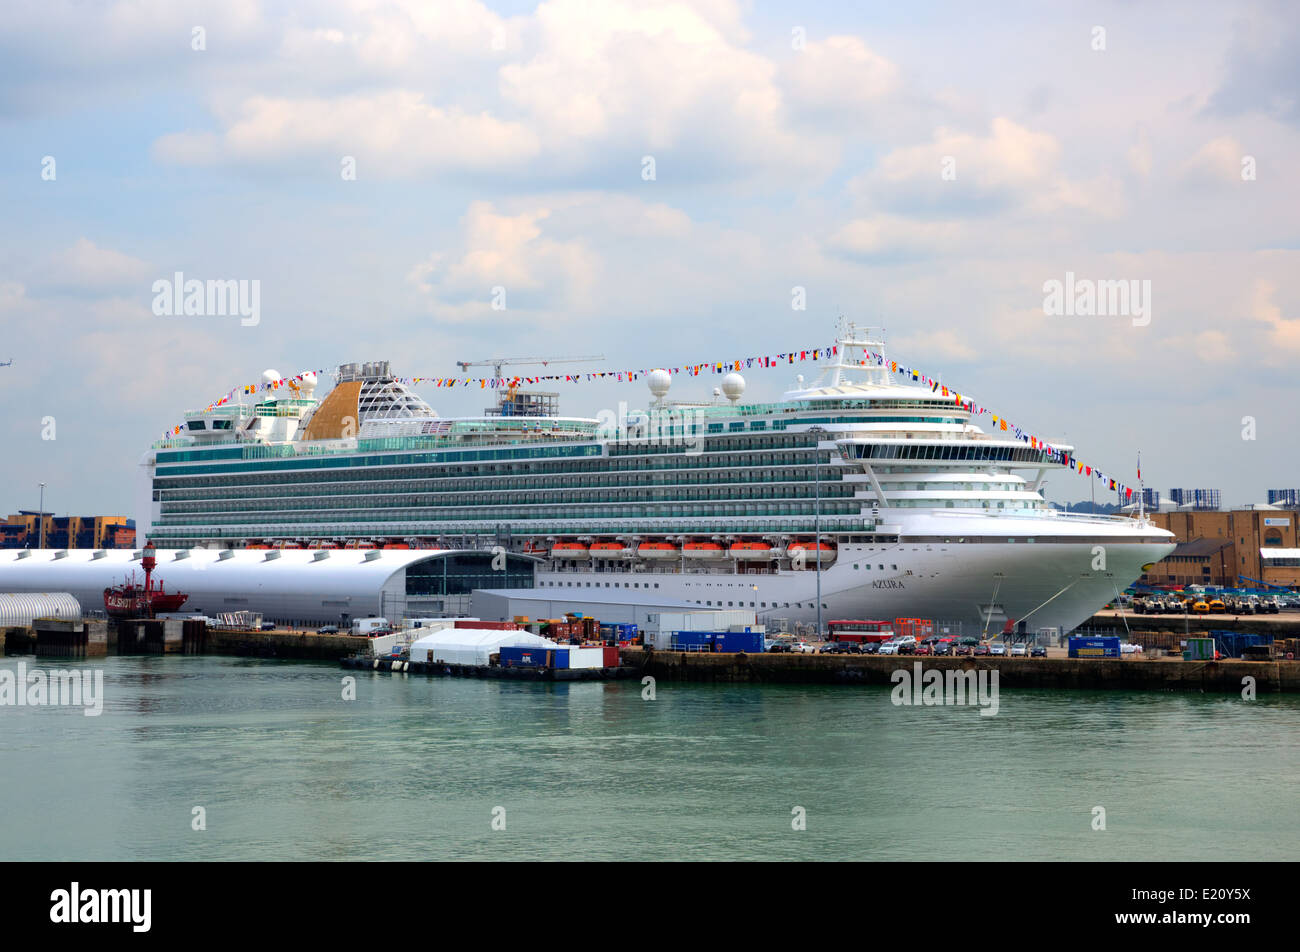 Azura Cruise Ship Operated PampO Cruises And Owned By